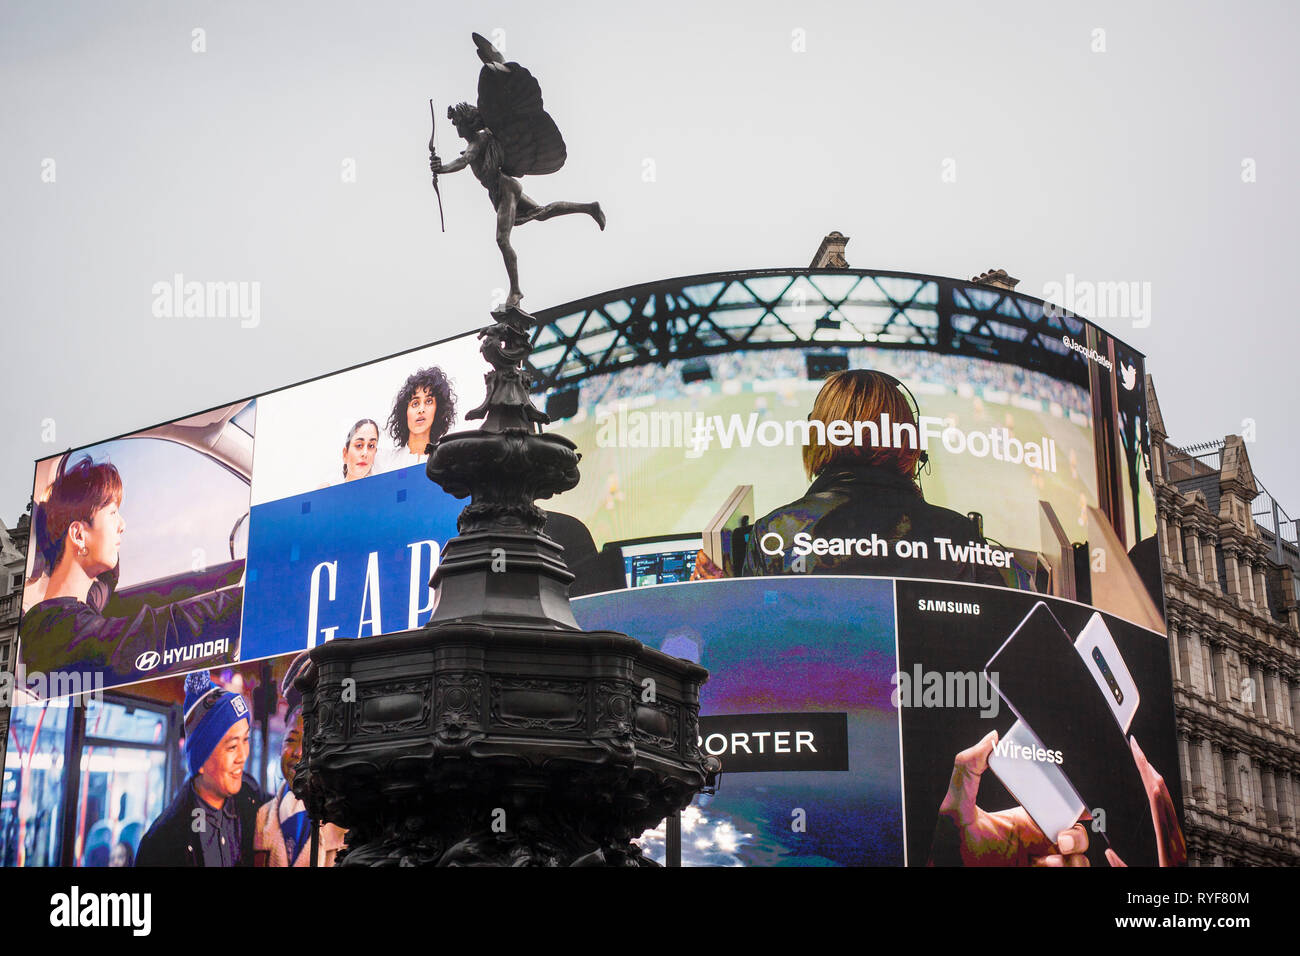 The Eros statue in Picadilly with the giant illuminated advertisng billboards behind. - Stock Image